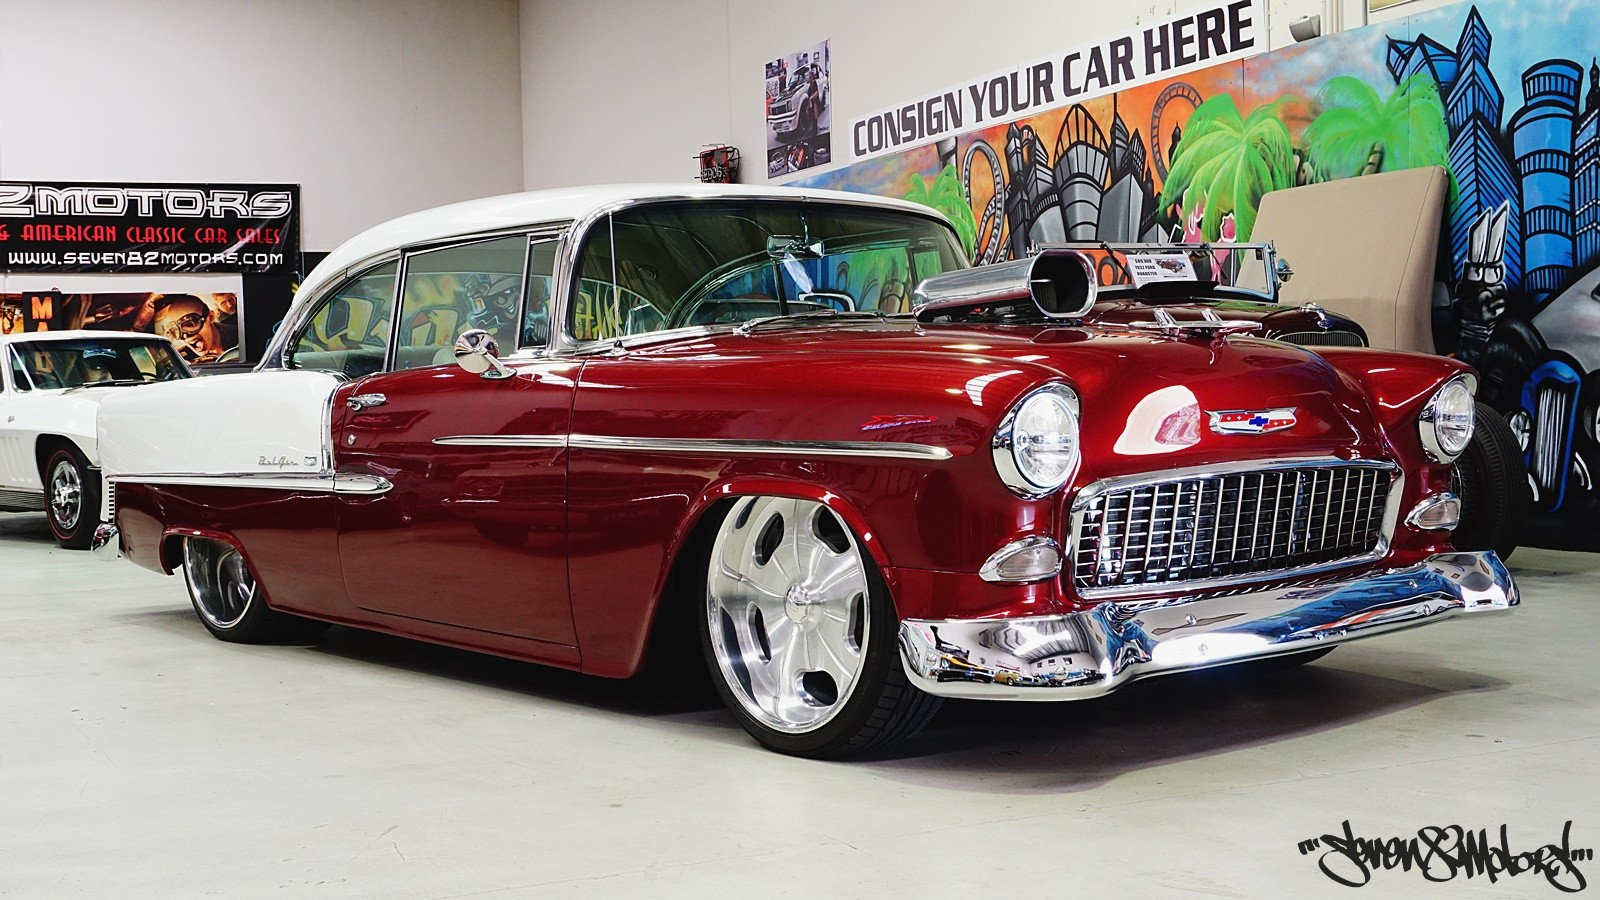 Classic Cars For Sale Seven82motors 1966 Chevrolet Bel Air Value 1955 Chevy Belair Sports Coupe